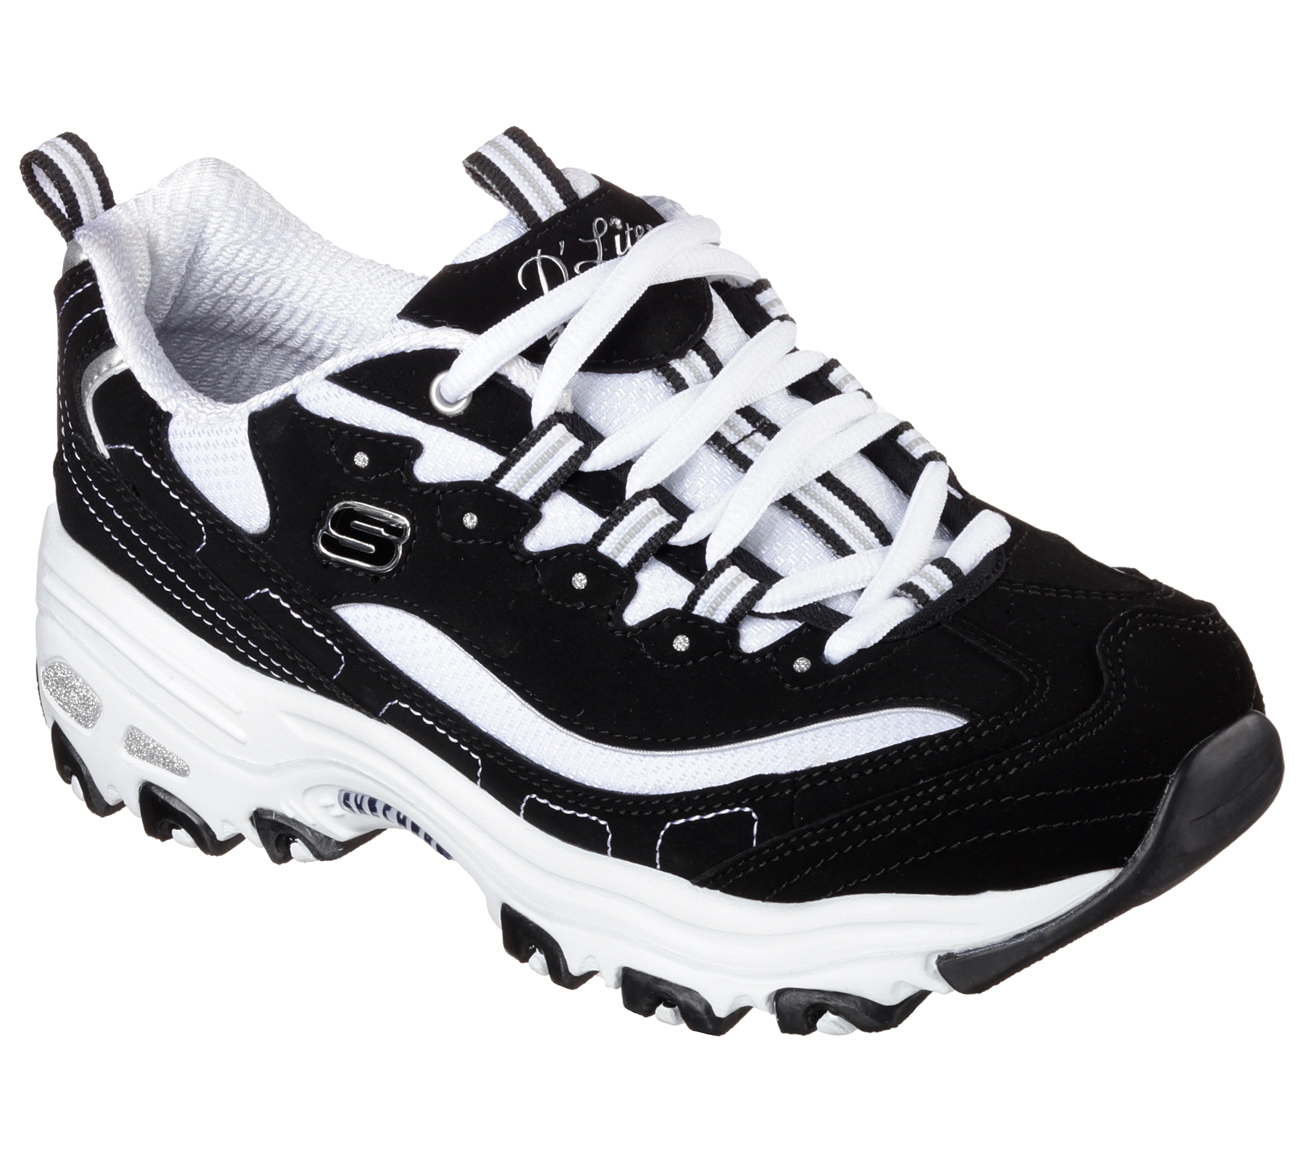 Sketchers Leather Upper Ladies Shoes